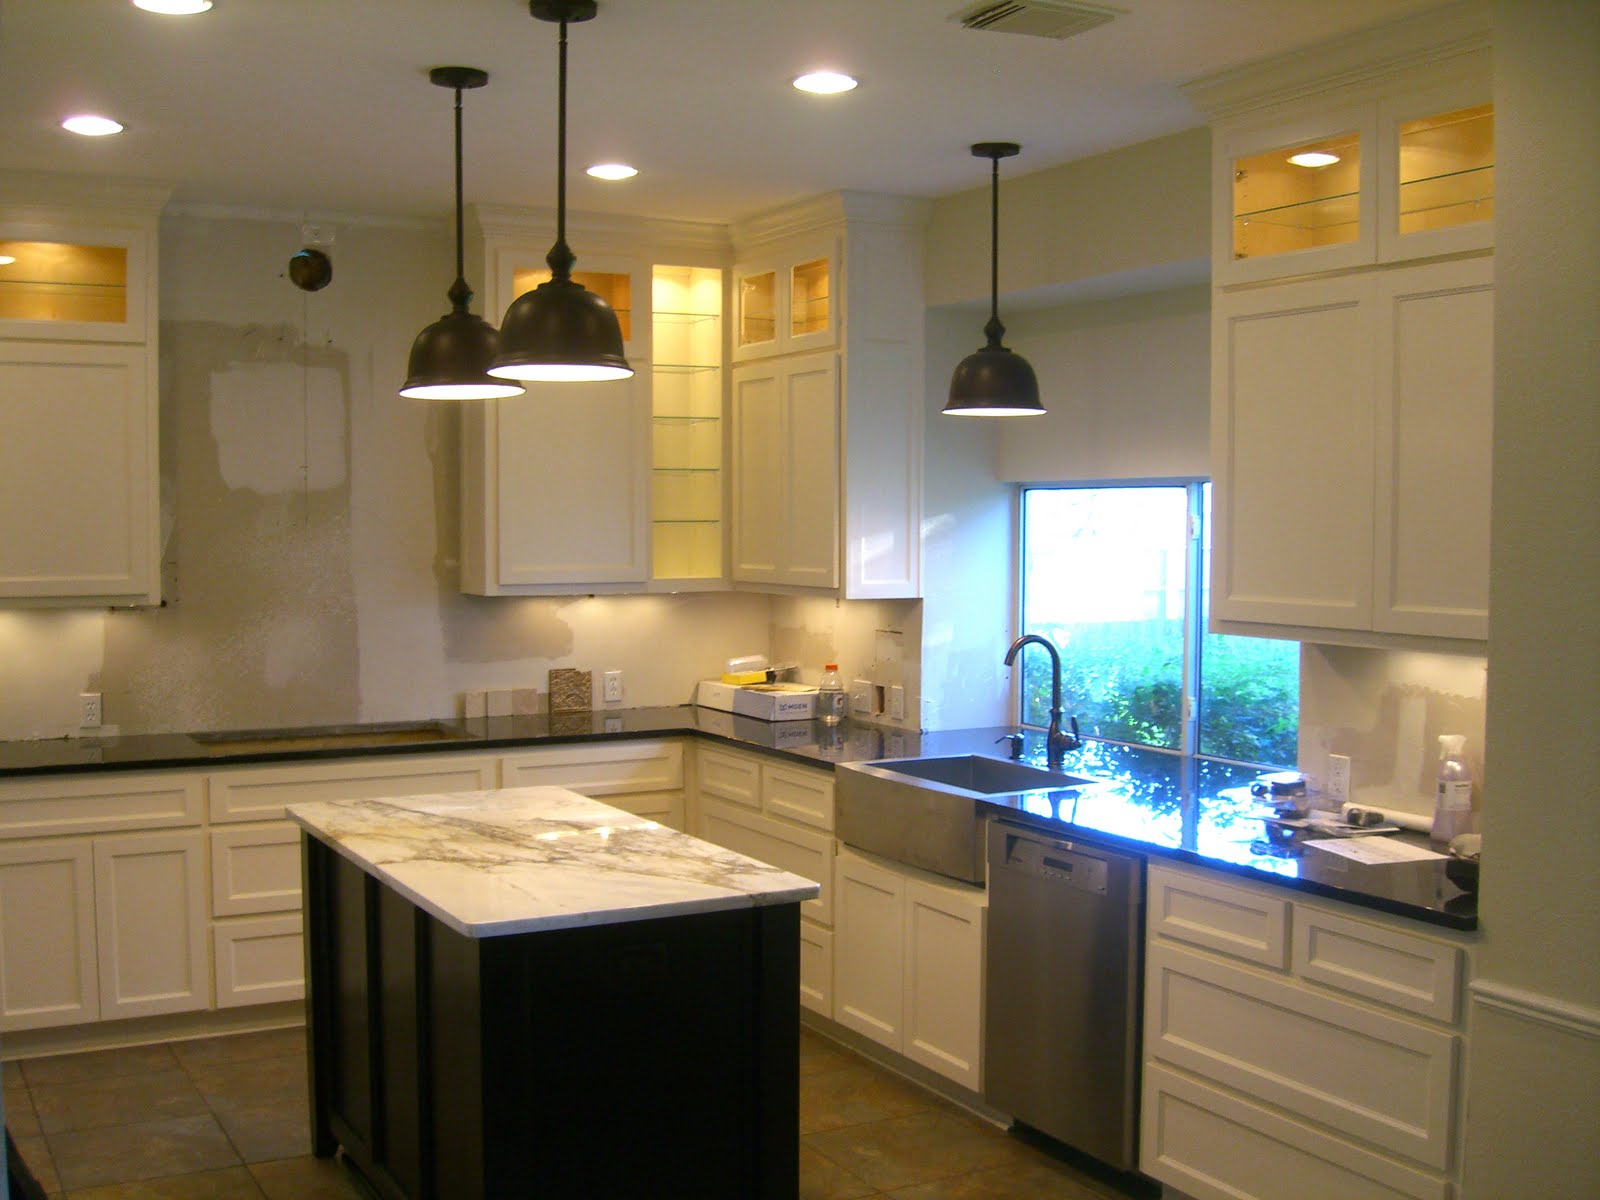 Kitchen lighting fixtures ceiling Photo - 9